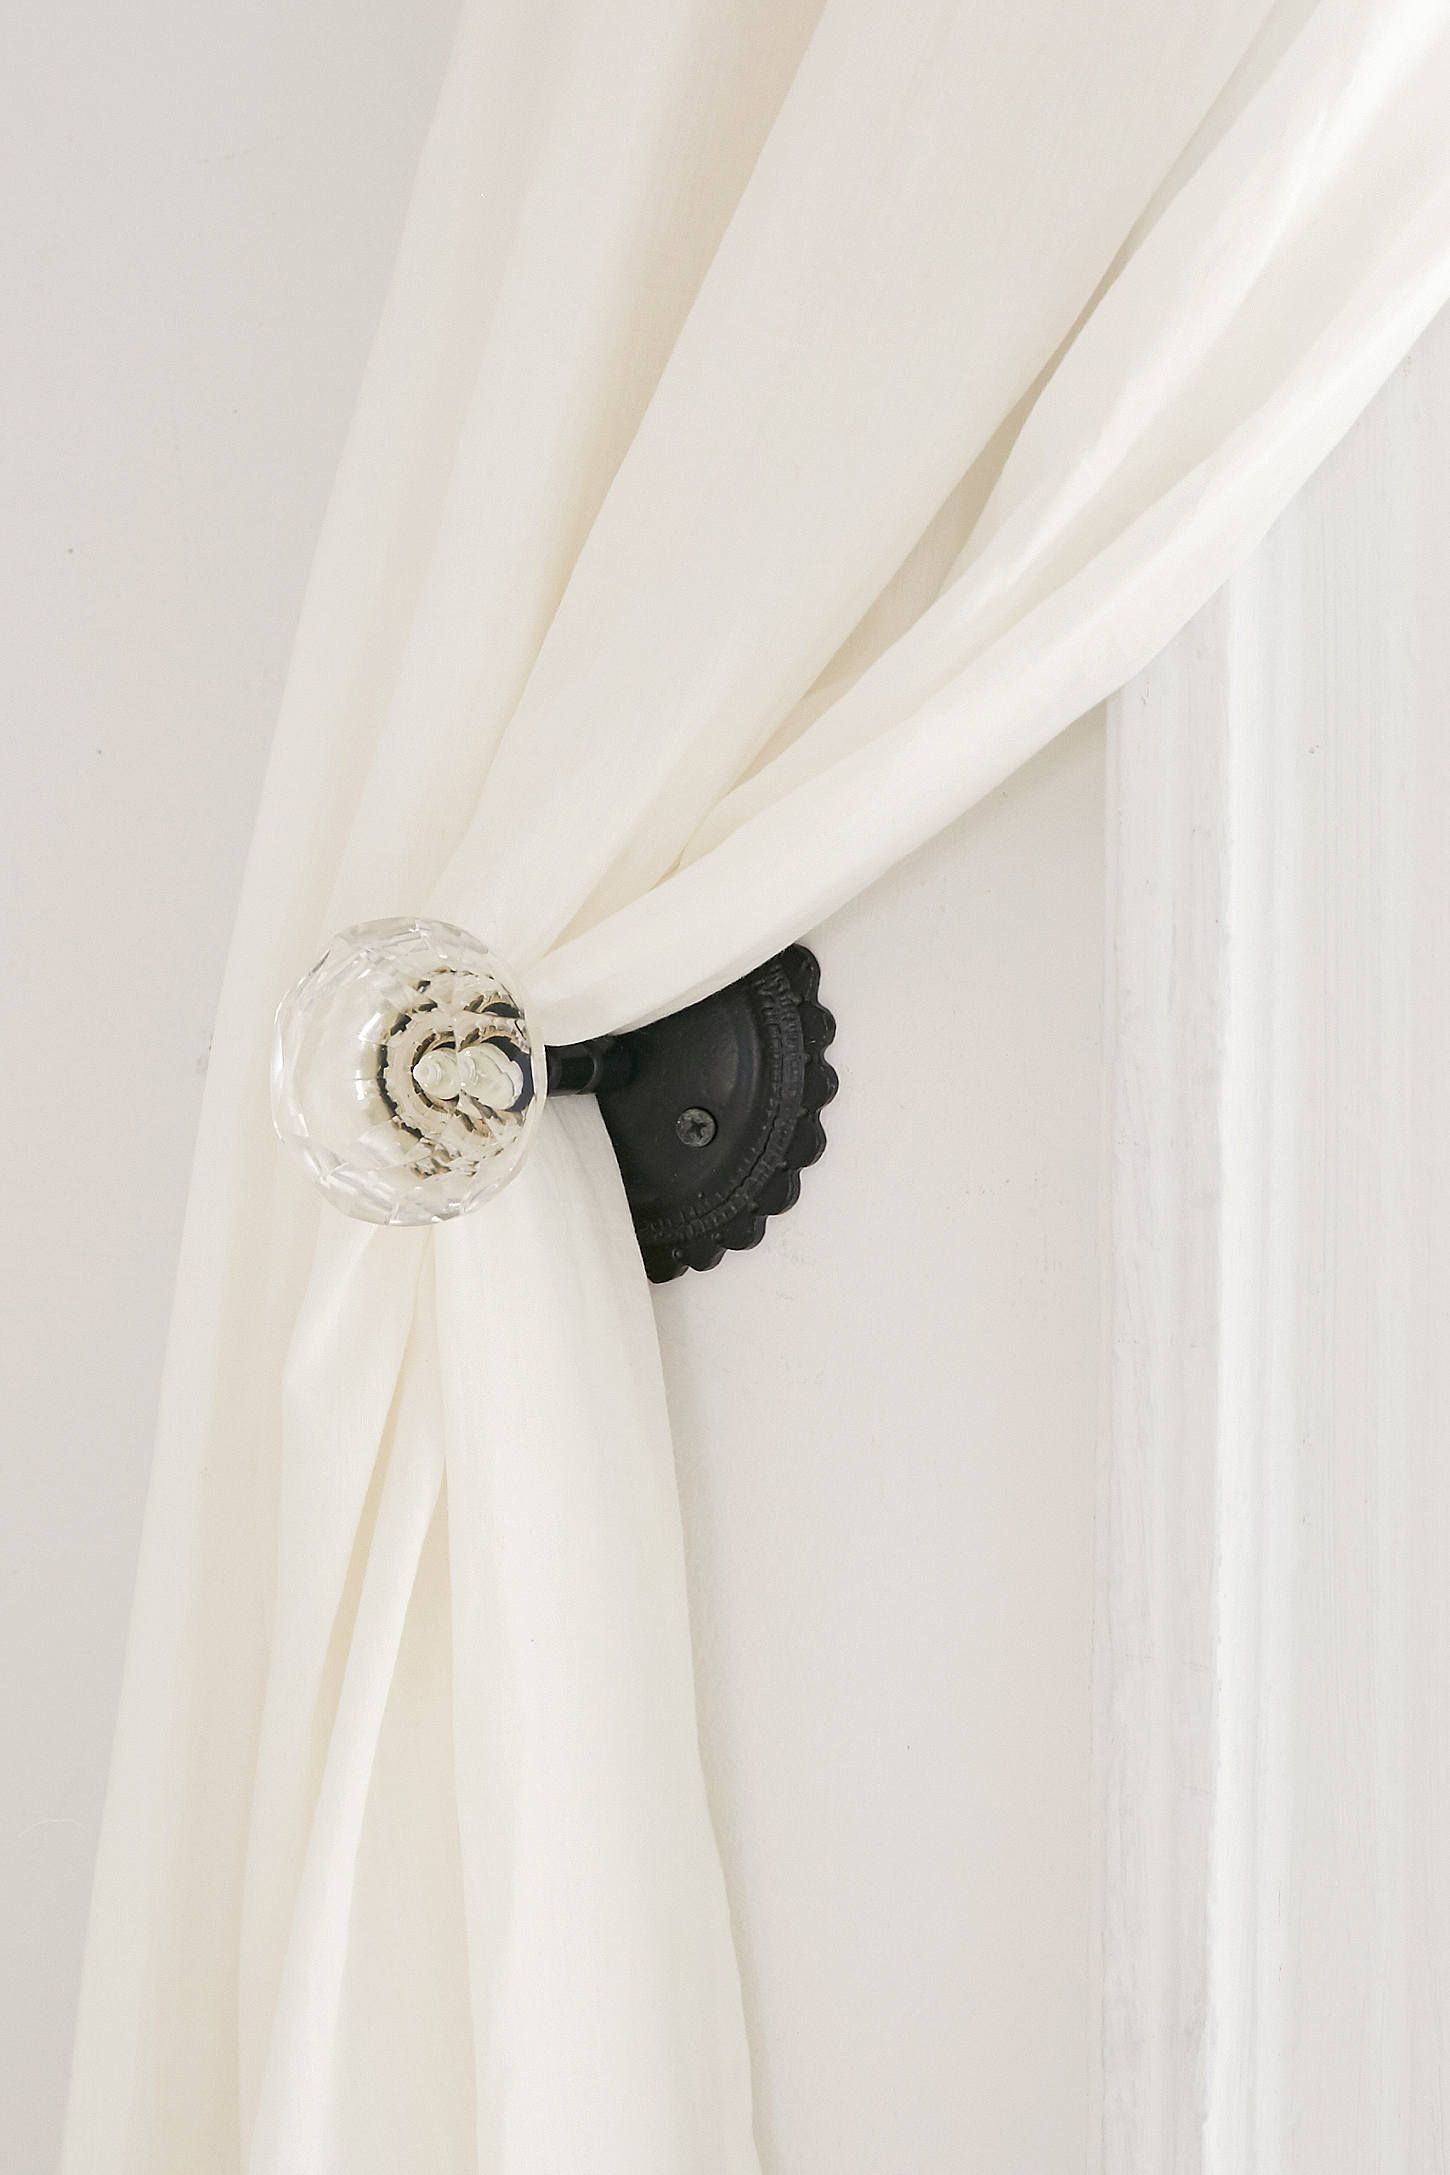 Slide View 2 Crystal Curtain Tie Back Crystal Curtains